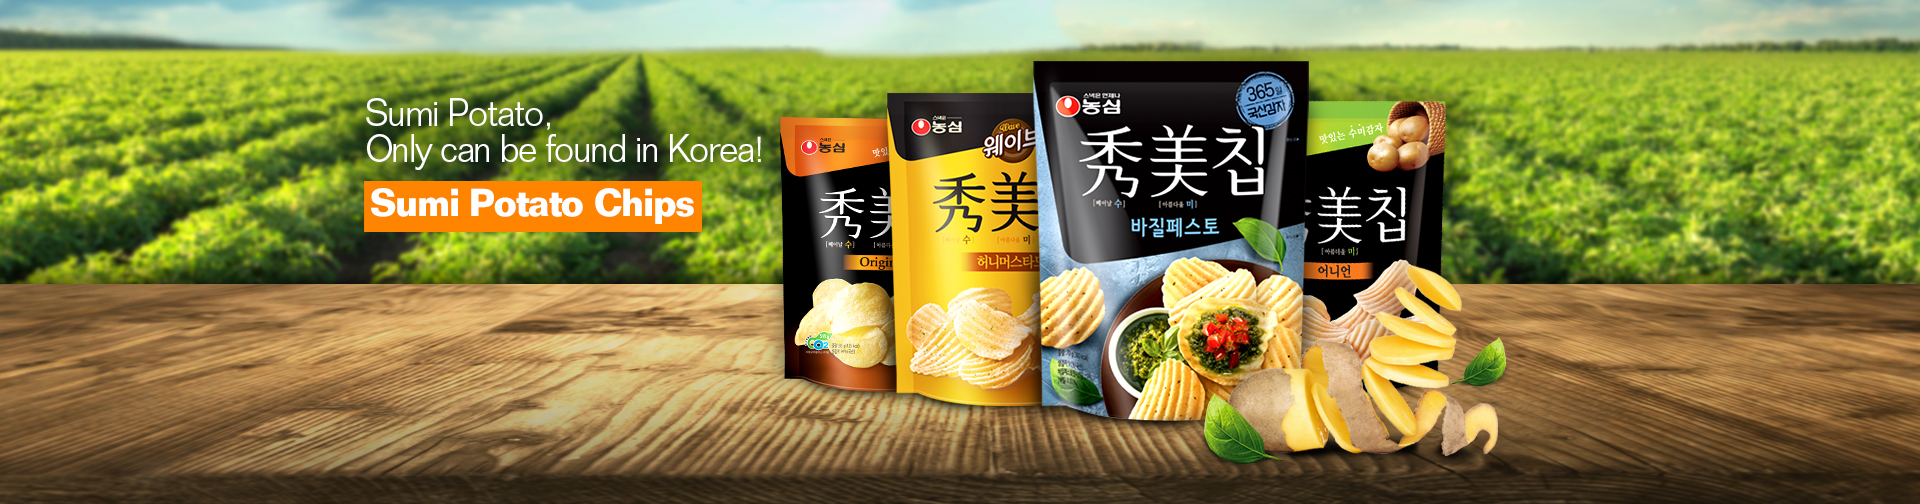 Sumi Potato,